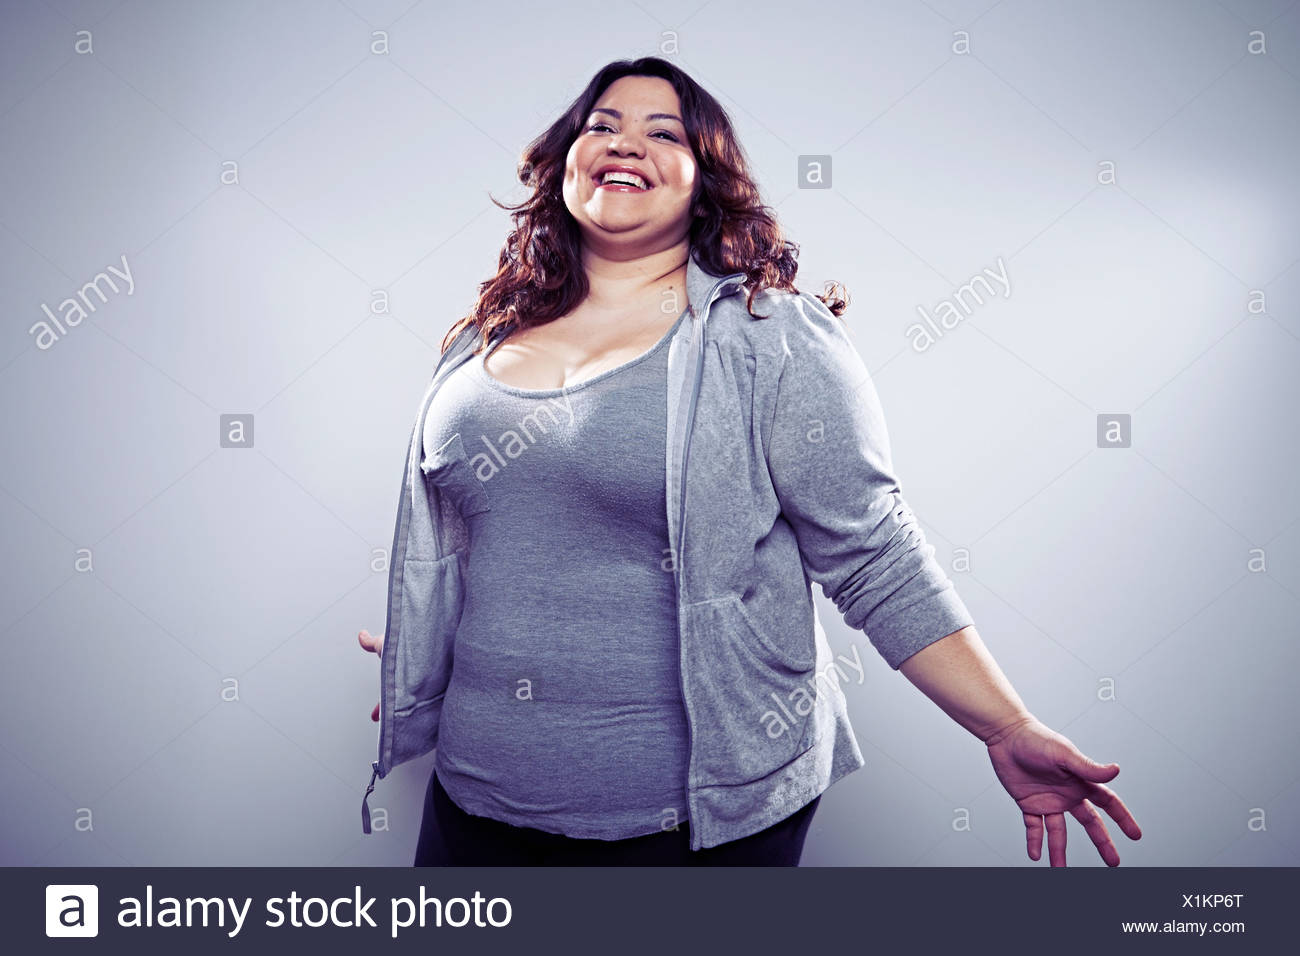 Mid adult woman wearing grey tracksuit top, arms out - Stock Image